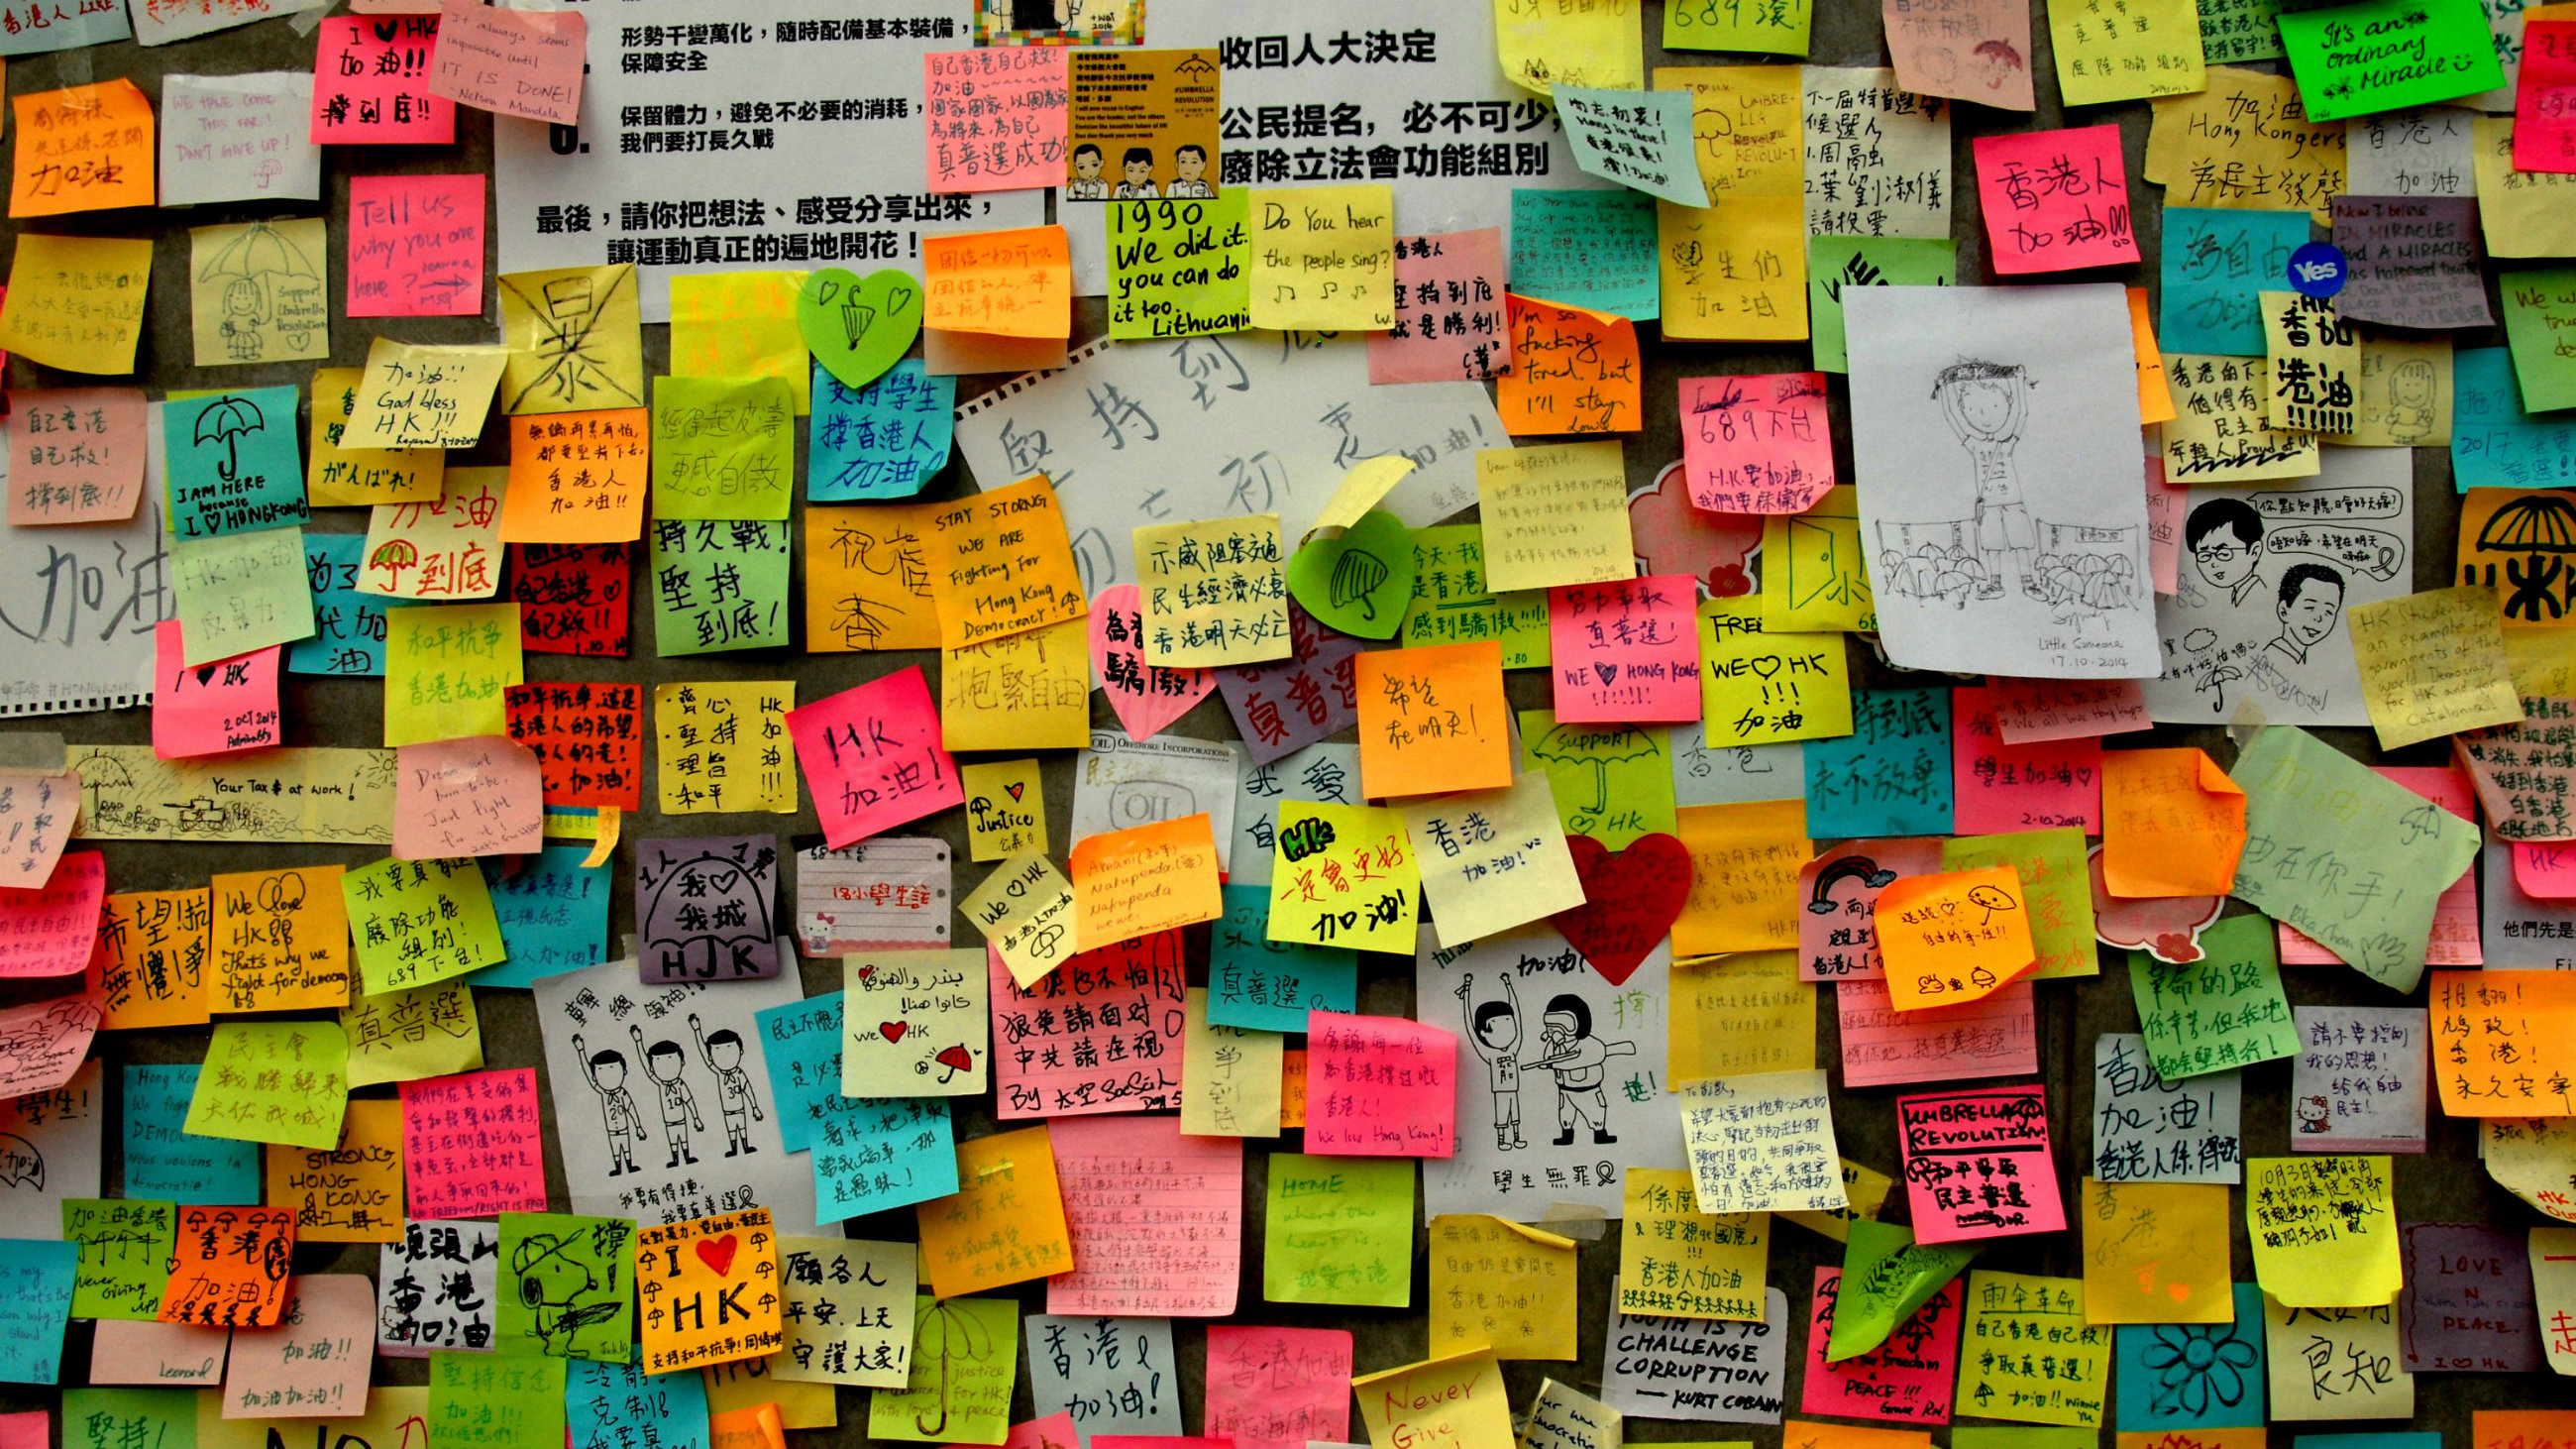 Post-It notes at Hong Kong protests.